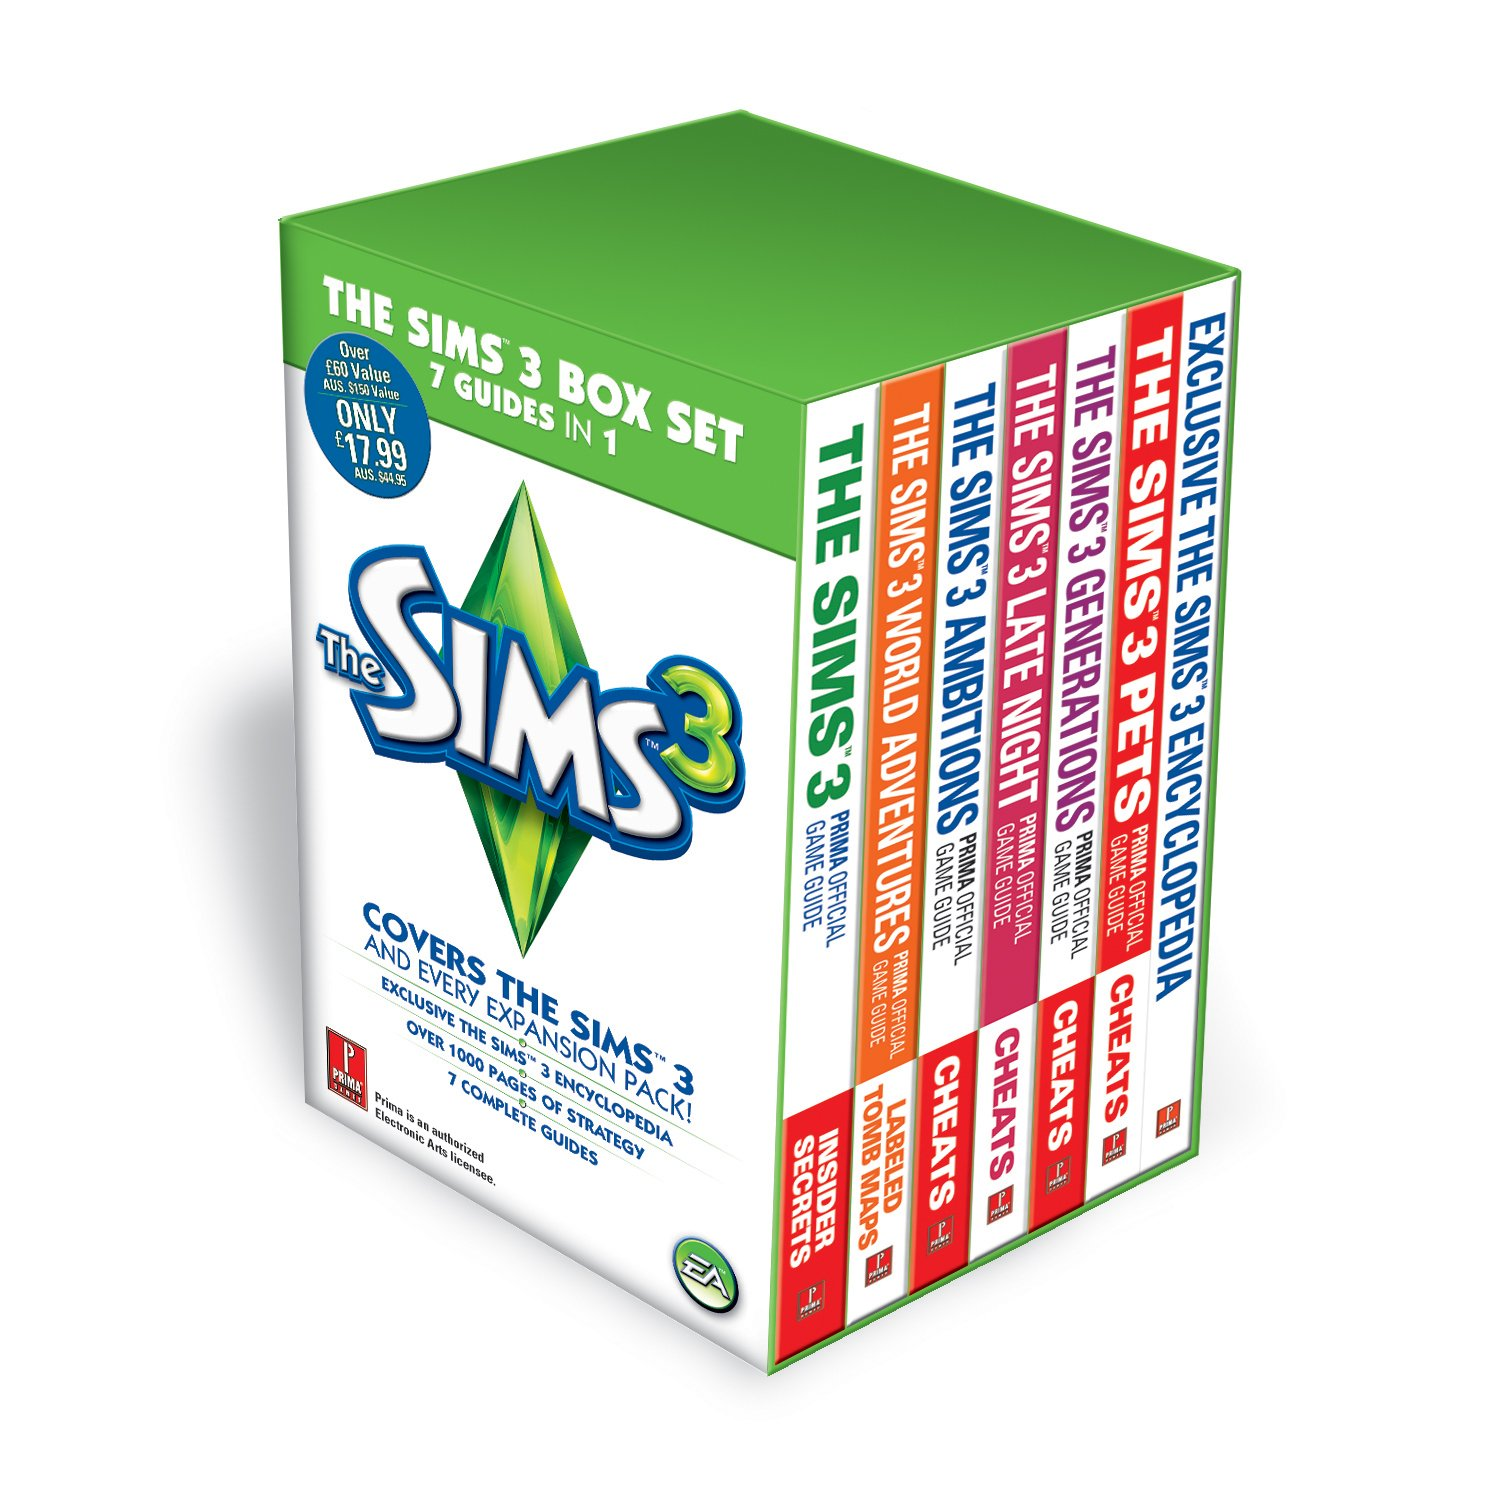 The sims 3: prima official game guide by catherine browne.